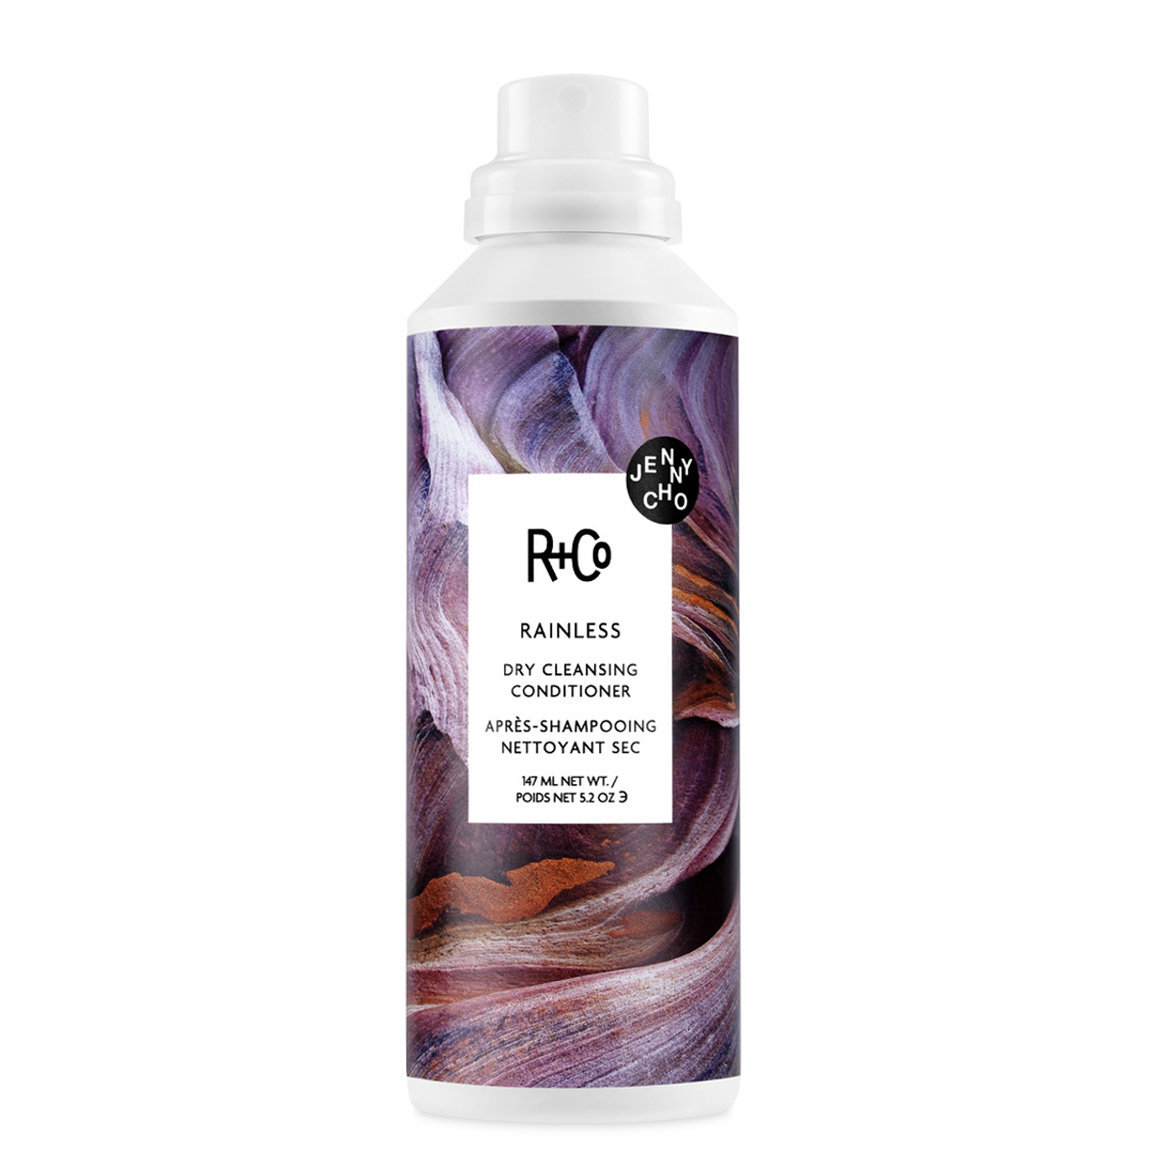 R+Co Rainless Dry Cleansing Conditioner alternative view 1 - product swatch.